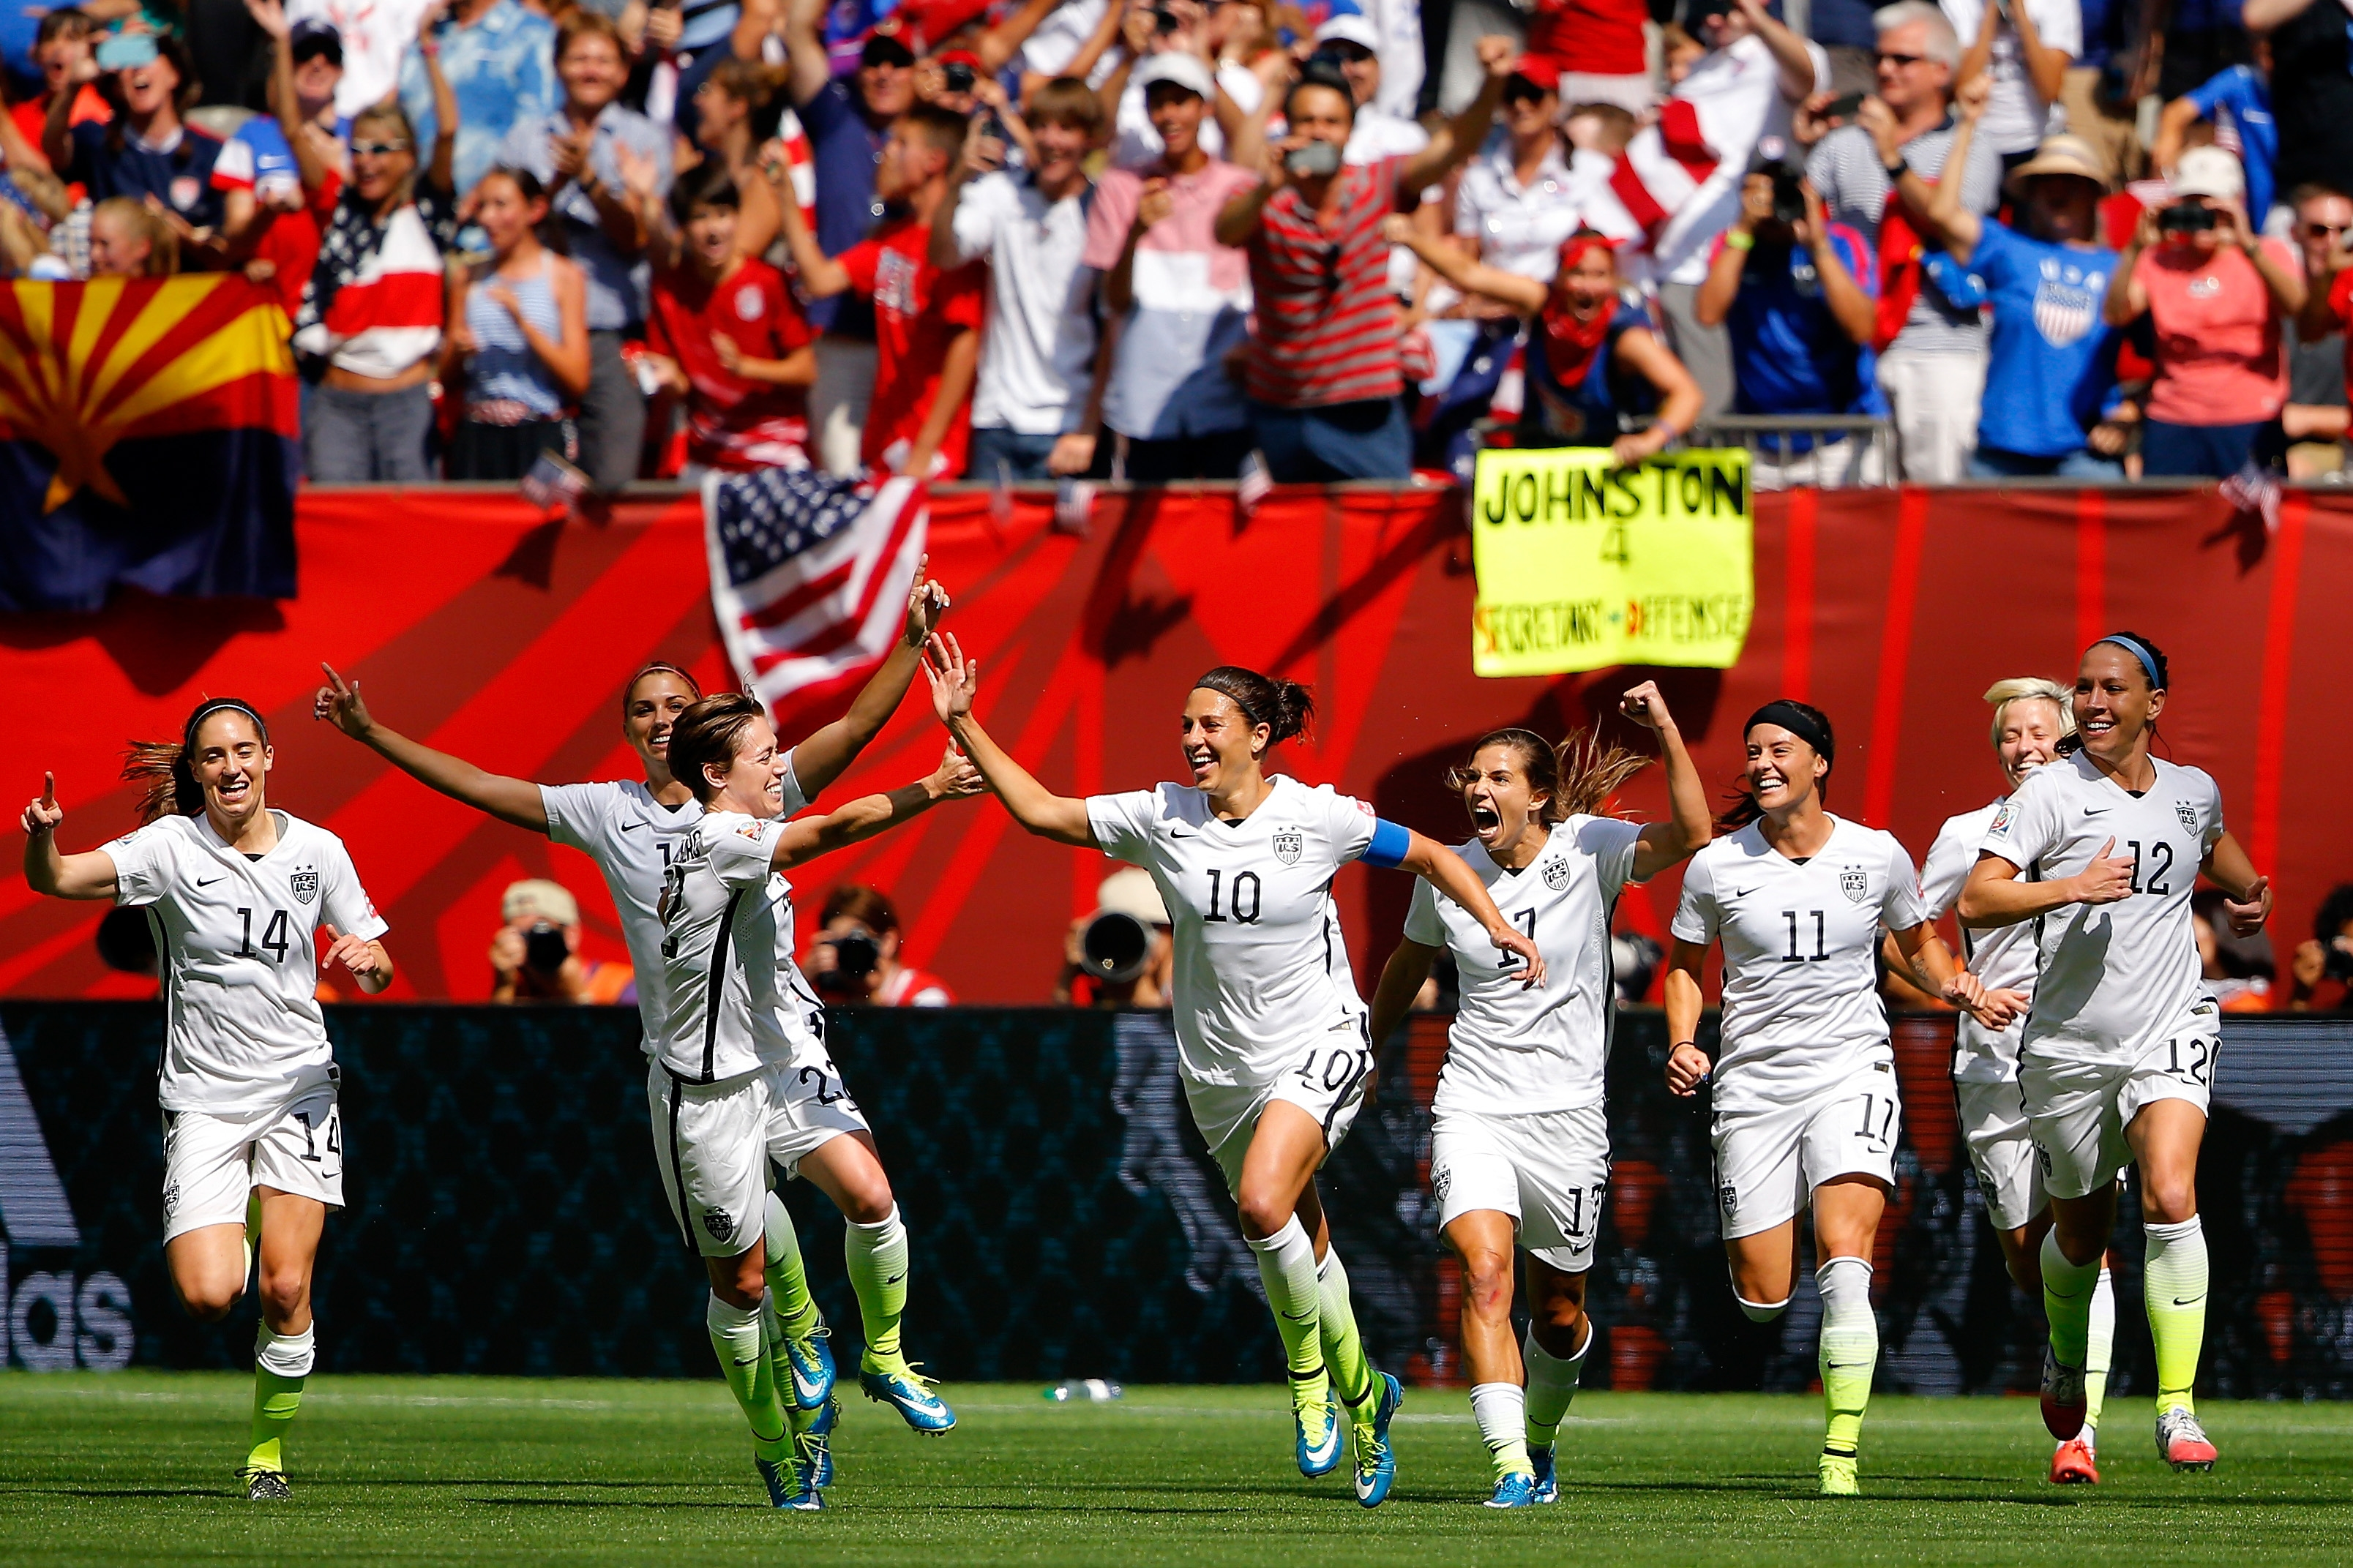 Carli Lloyd (10) celebrates with teammates after scoring her second goal against Japan in the 2015 Women's World Cup final.